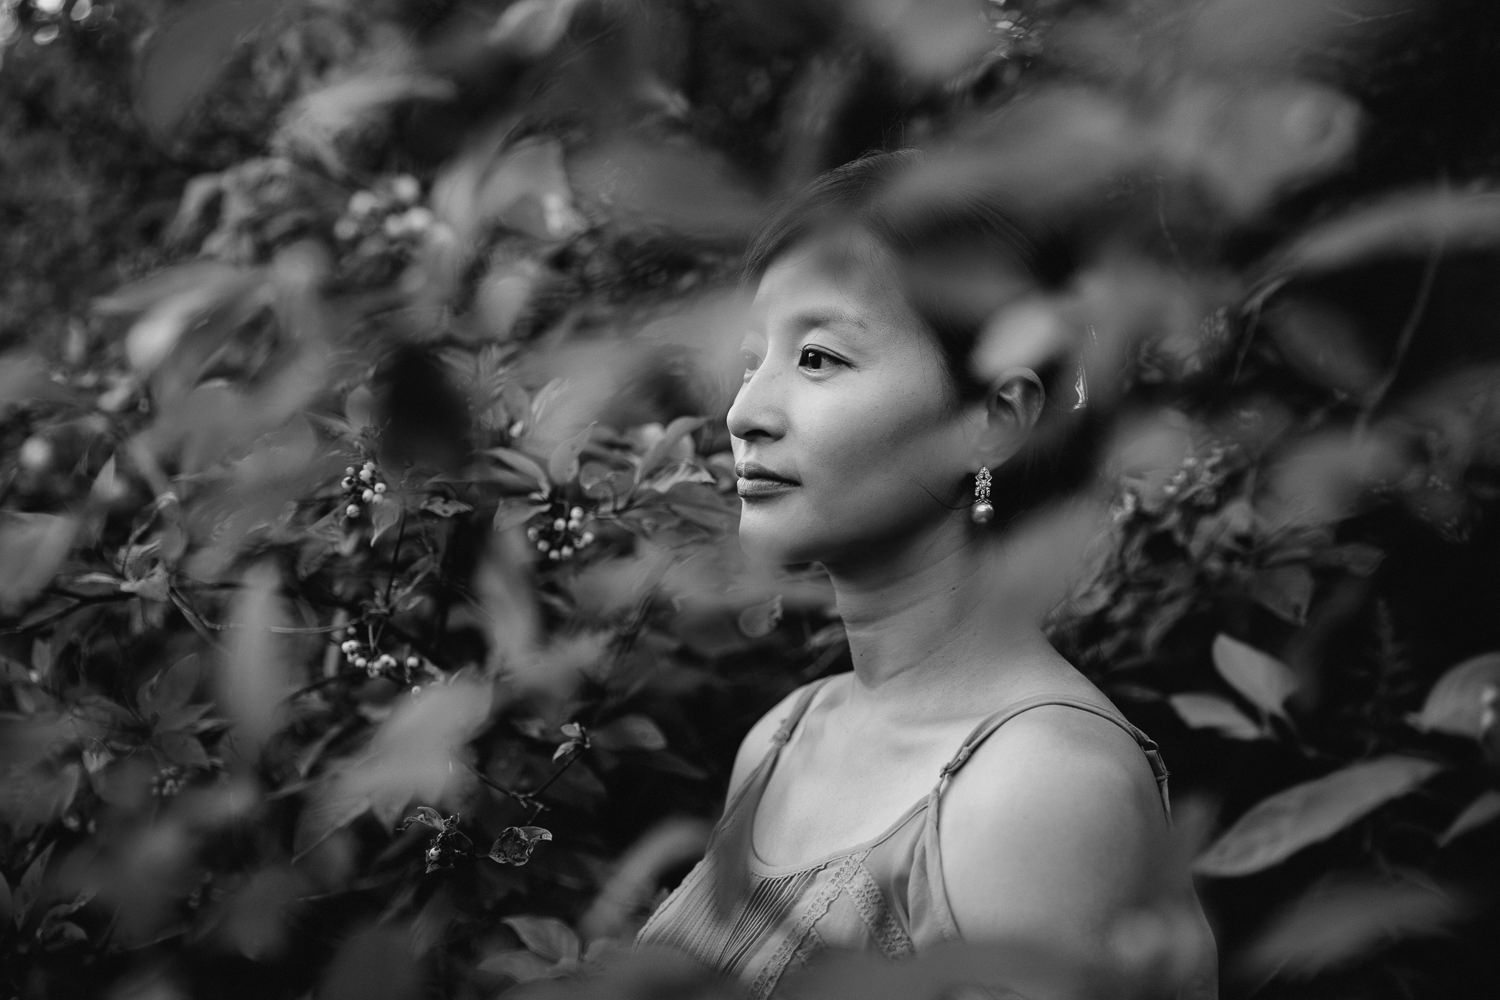 brunette woman with hair up in clip, wearing dangly earrings and a tank top looking off into the distance, shot through foliage - Markham In-Home Photos